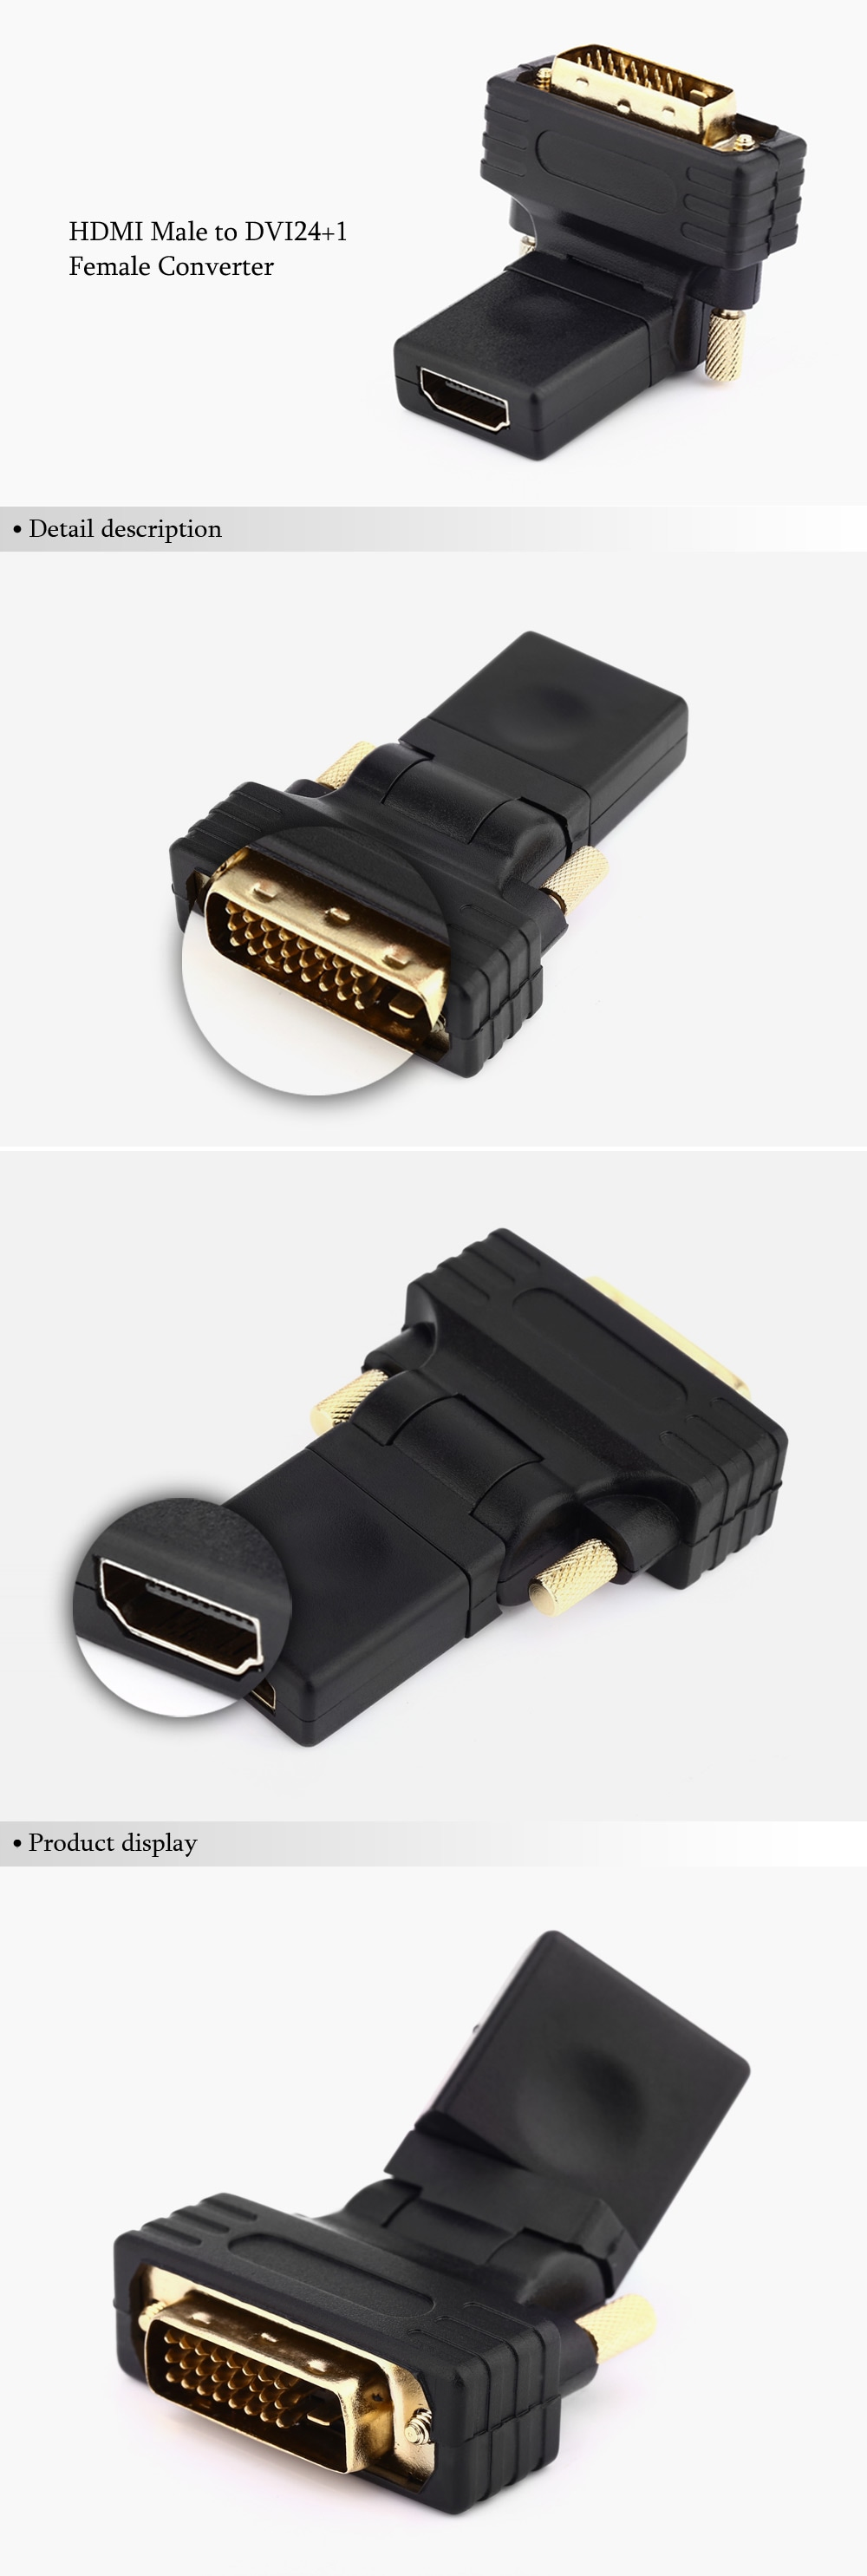 images/pc-audio-video-cable-connector-adapter/A201710301PB/hdmi-to-dvi24-1-female-to-male-converter-black-plusbuyer_4.jpg